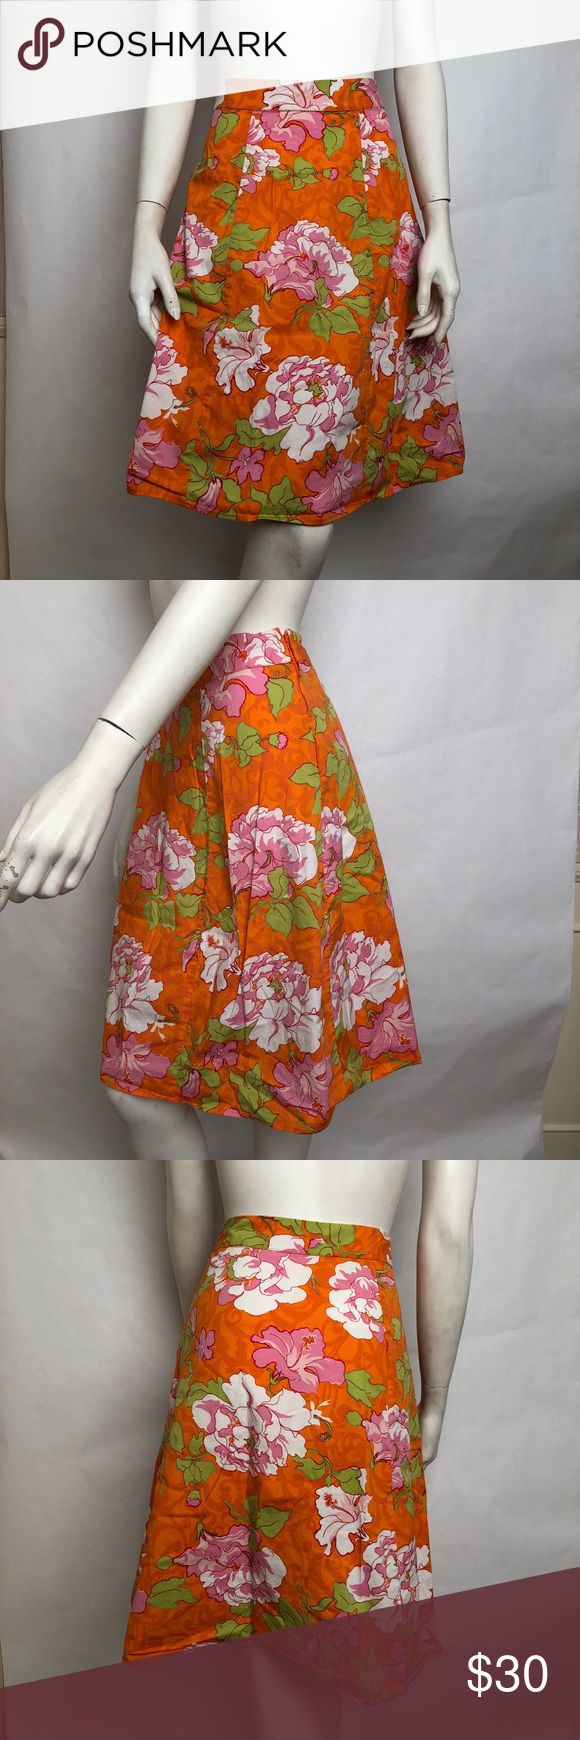 """St Johns Bay Skirt Sz 22W Orange Pink Floral St Johns Bay Womens Midi Skirt Stretch Orange Pink Multi Color Floral Pattern Size 22 Brand: St John's Bay Woman Material: 97% Cotton 3% Lycra Color: Orange, Pink, Green, White Print: Large floral print - pink flower on orange background. Flowers appear to be Camellias or Peonies Measurements: Waist laid flat 19"""" Length 24"""" Zipper closure at back Condition: Good pre-loved condition Country of Manufacturer: India  Thank you for shopping at The Posh…"""